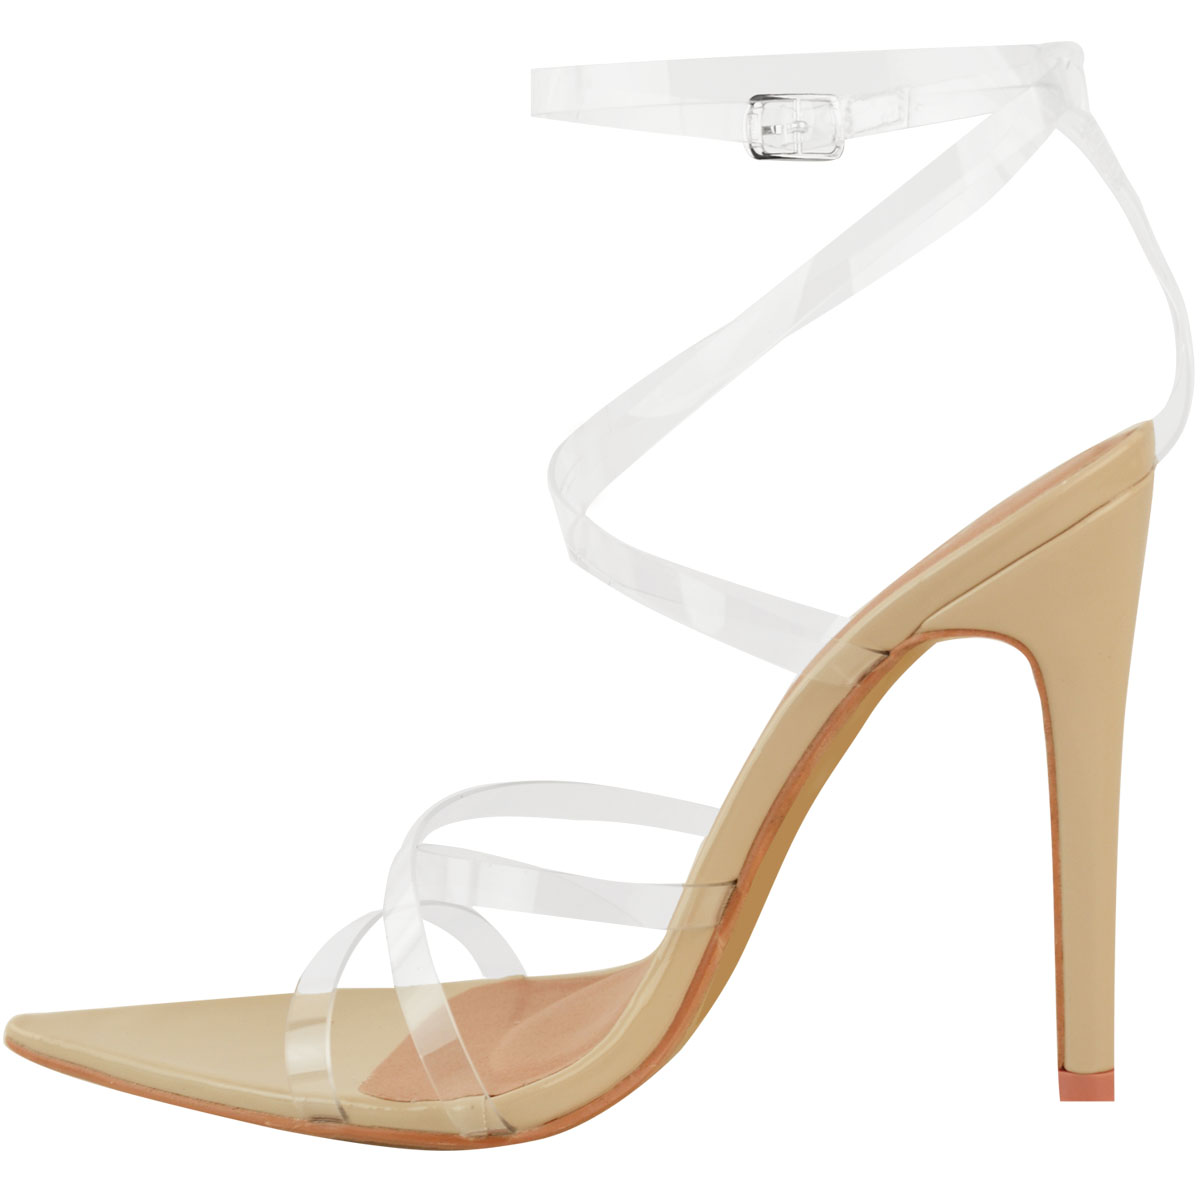 Womens-Sexy-Clear-High-Heel-Sandals-Perspex-Strappy-Party-Barely-There-Pointed thumbnail 10